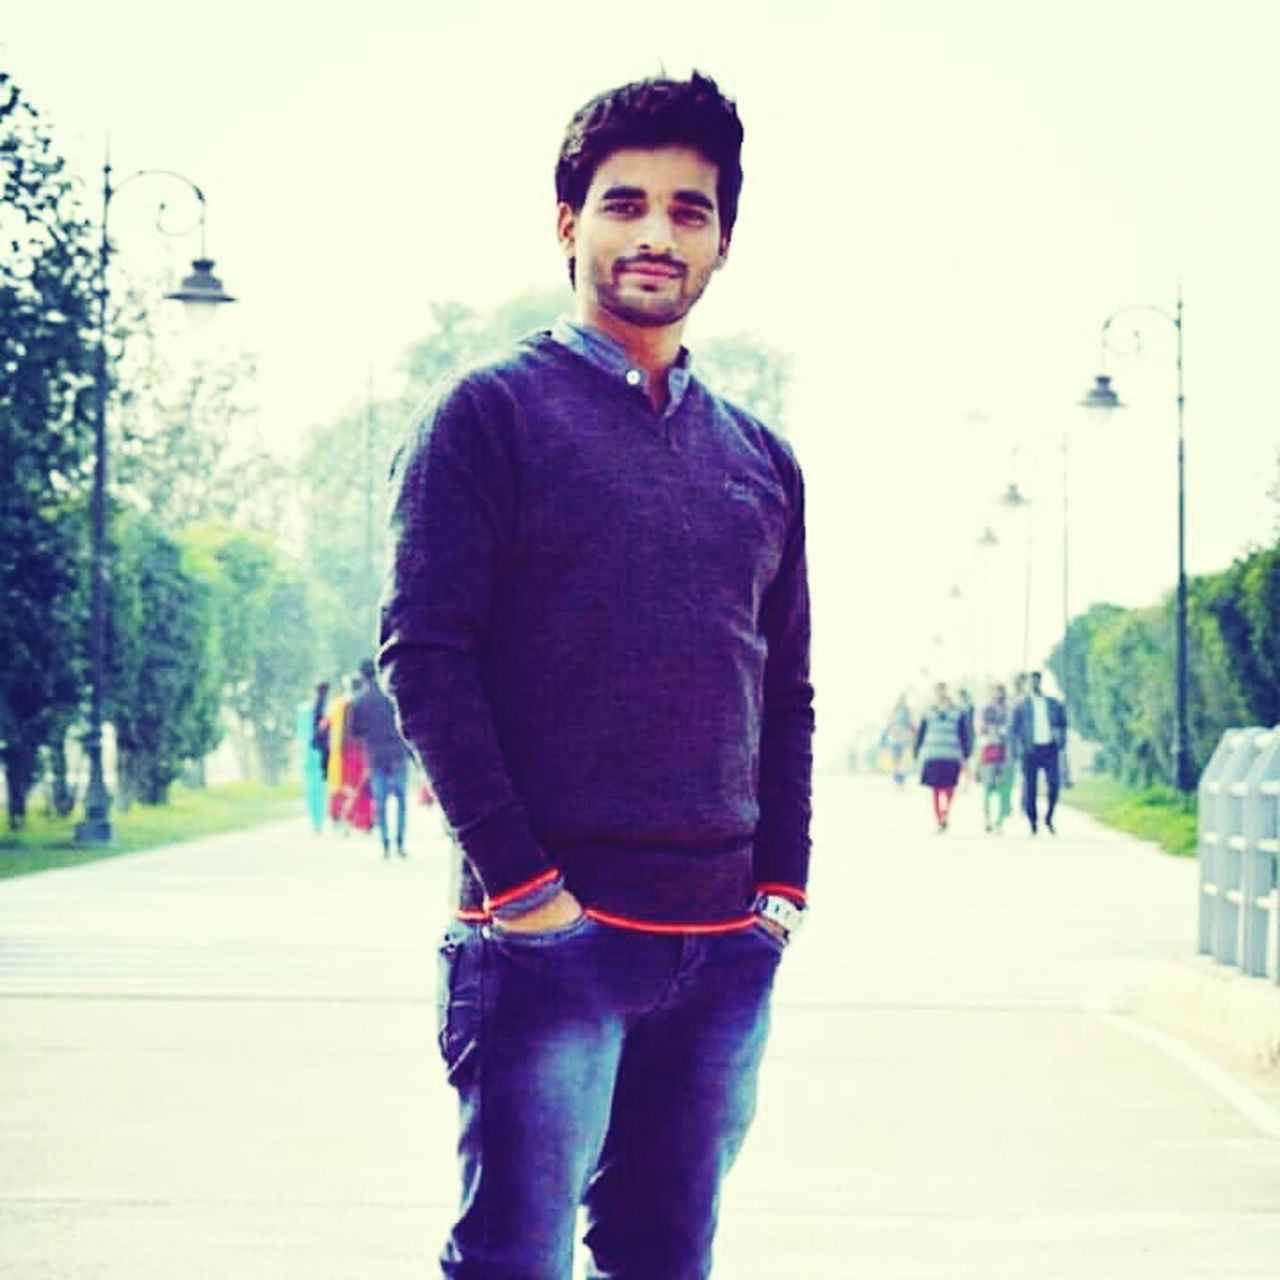 looking at camera, smiling, portrait, real people, casual clothing, one person, happiness, young adult, standing, focus on foreground, hands in pockets, young men, outdoors, lifestyles, day, cheerful, tree, one man only, adult, people, adults only